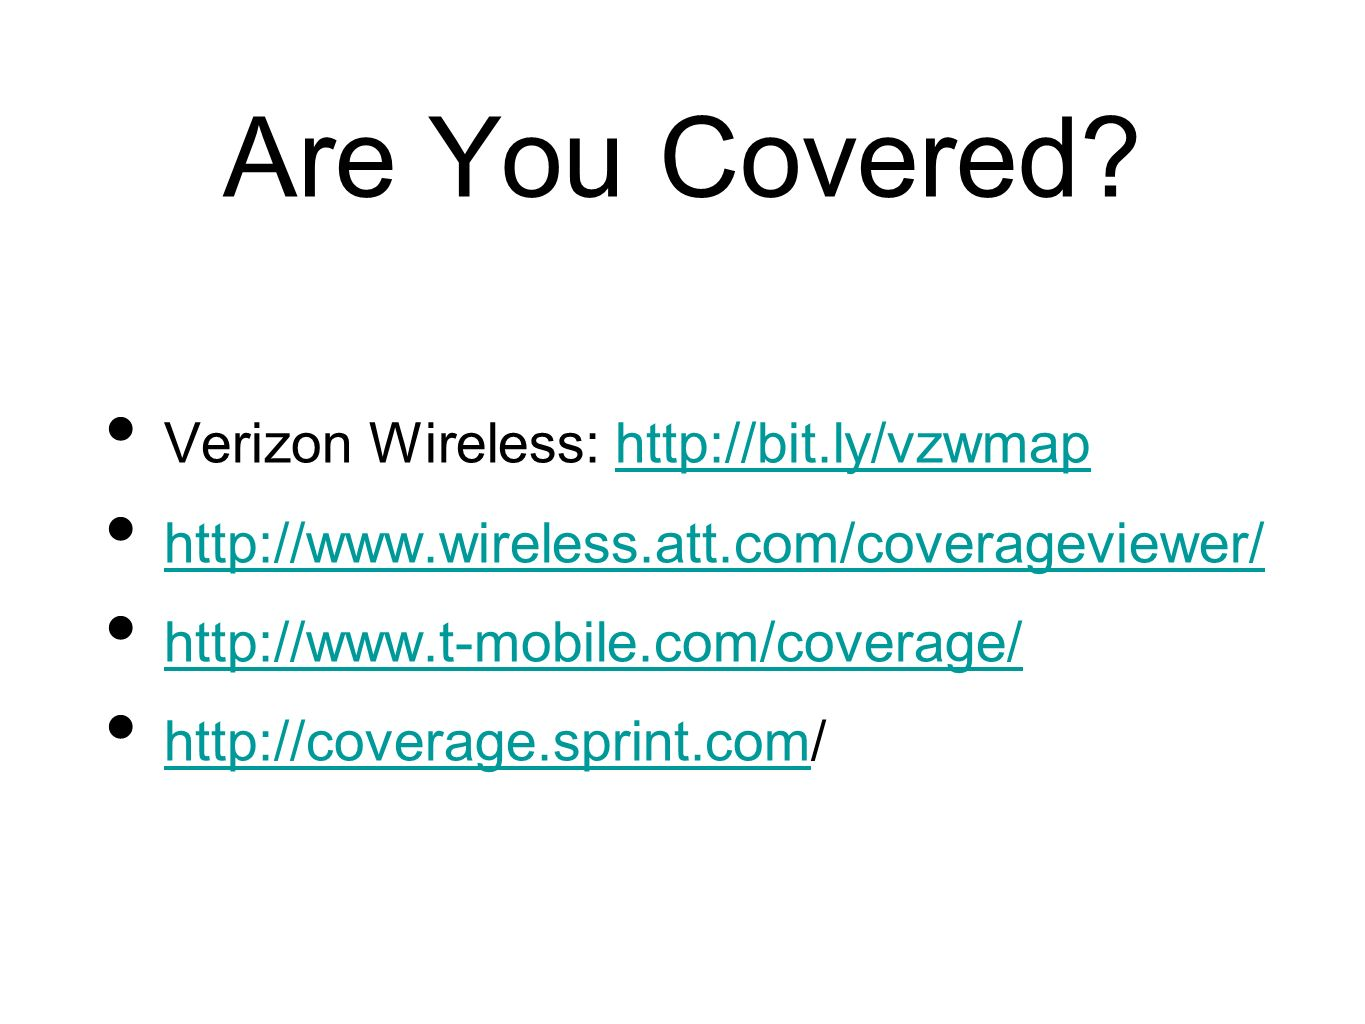 Are You Covered? Verizon Wireless: http://bit.ly/vzwmaphttp://bit.ly/vzwmap http://www.wireless.att.com/coverageviewer/ http://www.t-mobile.com/covera